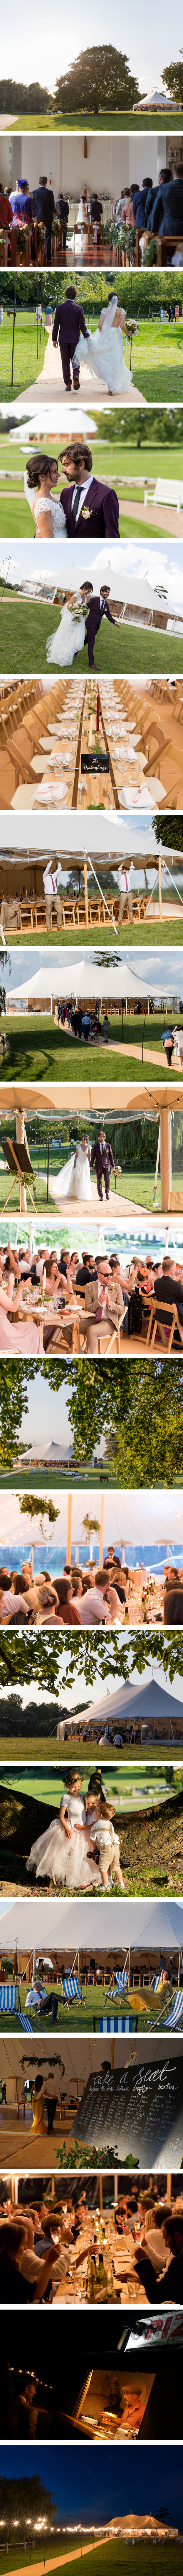 Chiara & Matt's PapaKåta Sperry Tent Wedding